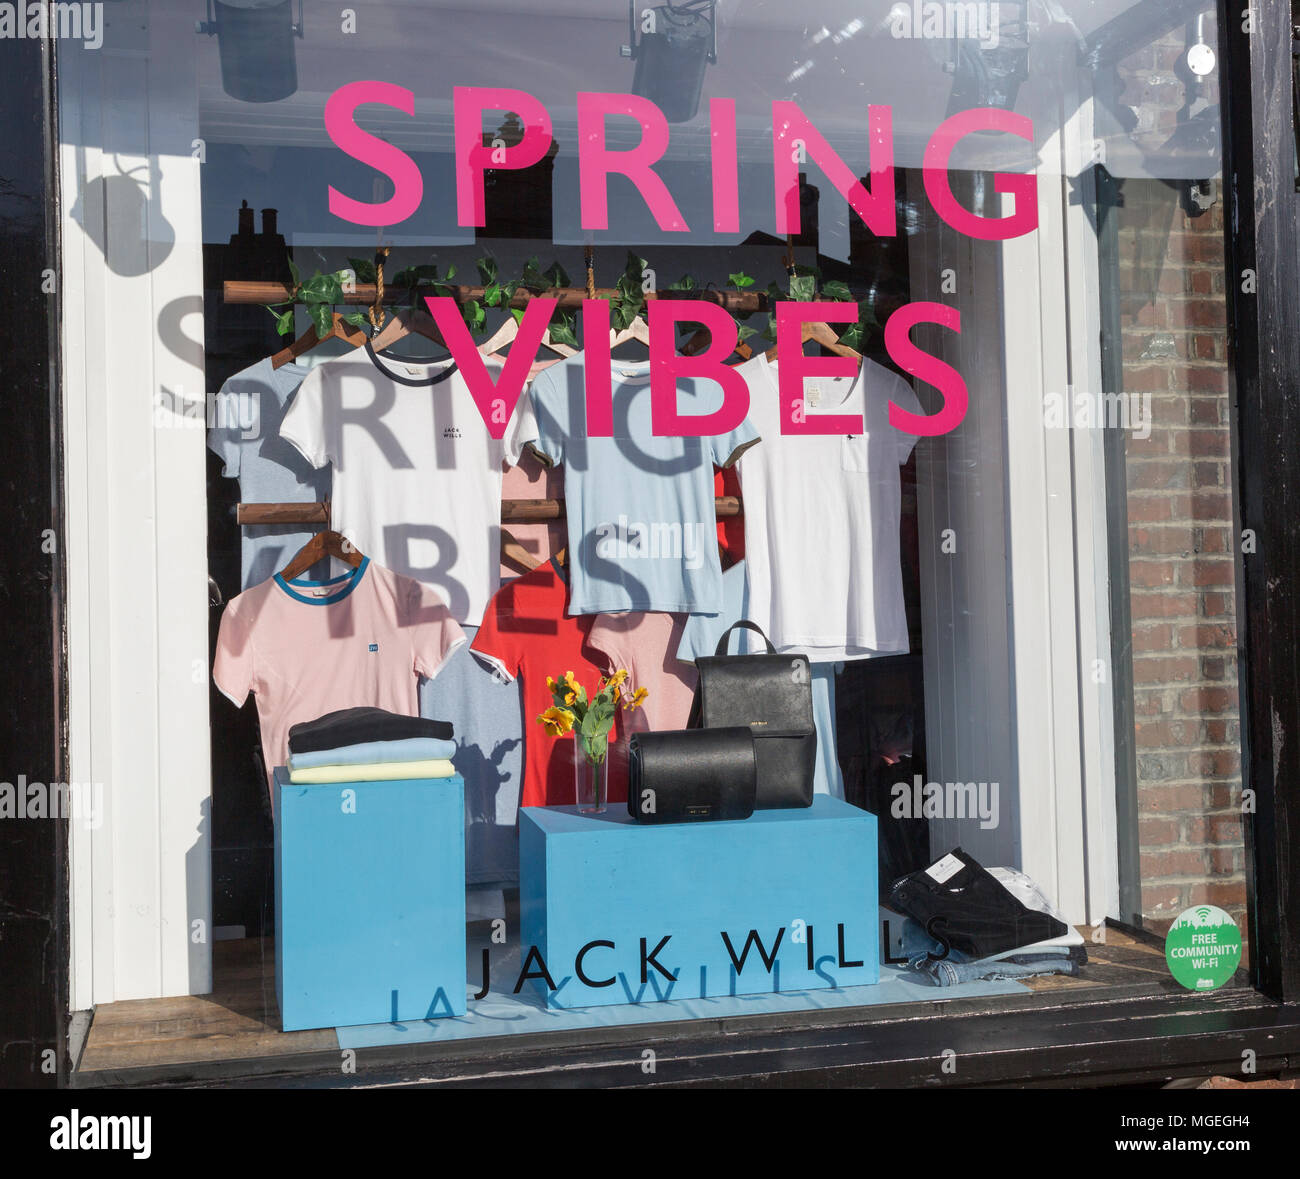 Spring Vibes at Jack Wills clothes fashion shop High Street, Marlborough, Wiltshire, England, UK - Stock Image